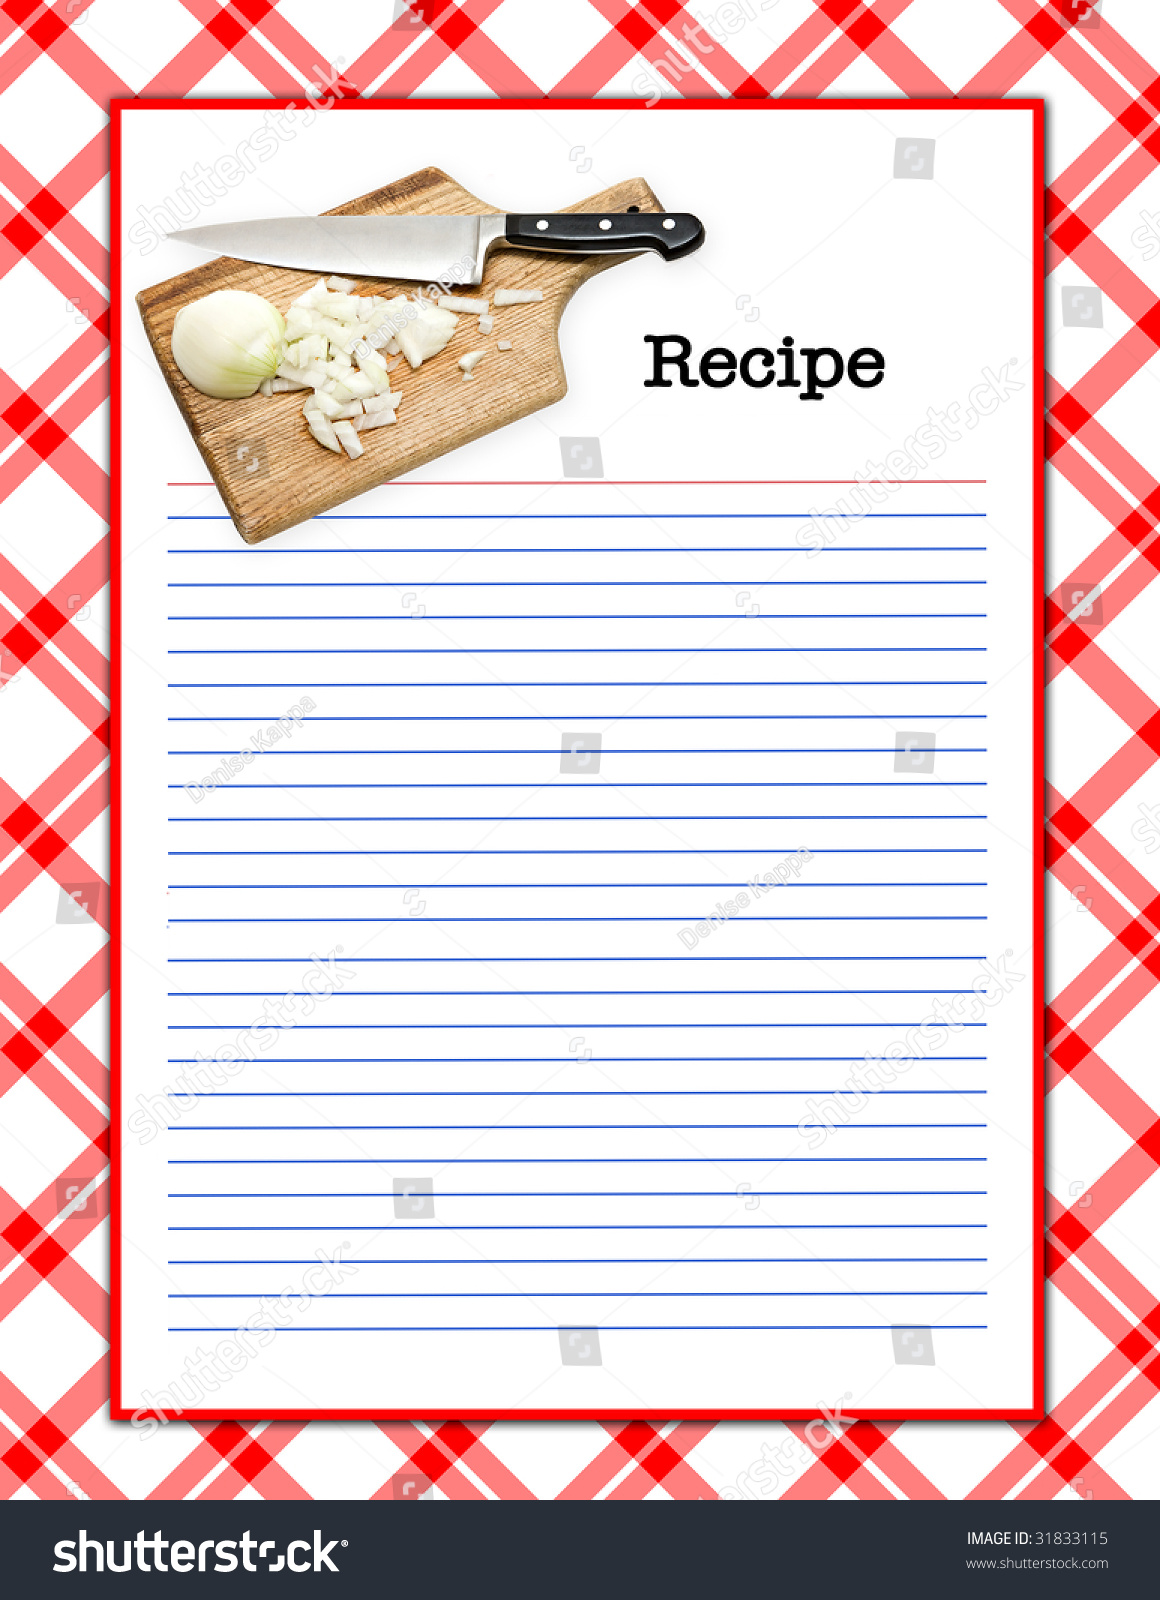 Red White Recipe Layout Matching Background Stock Illustration ...